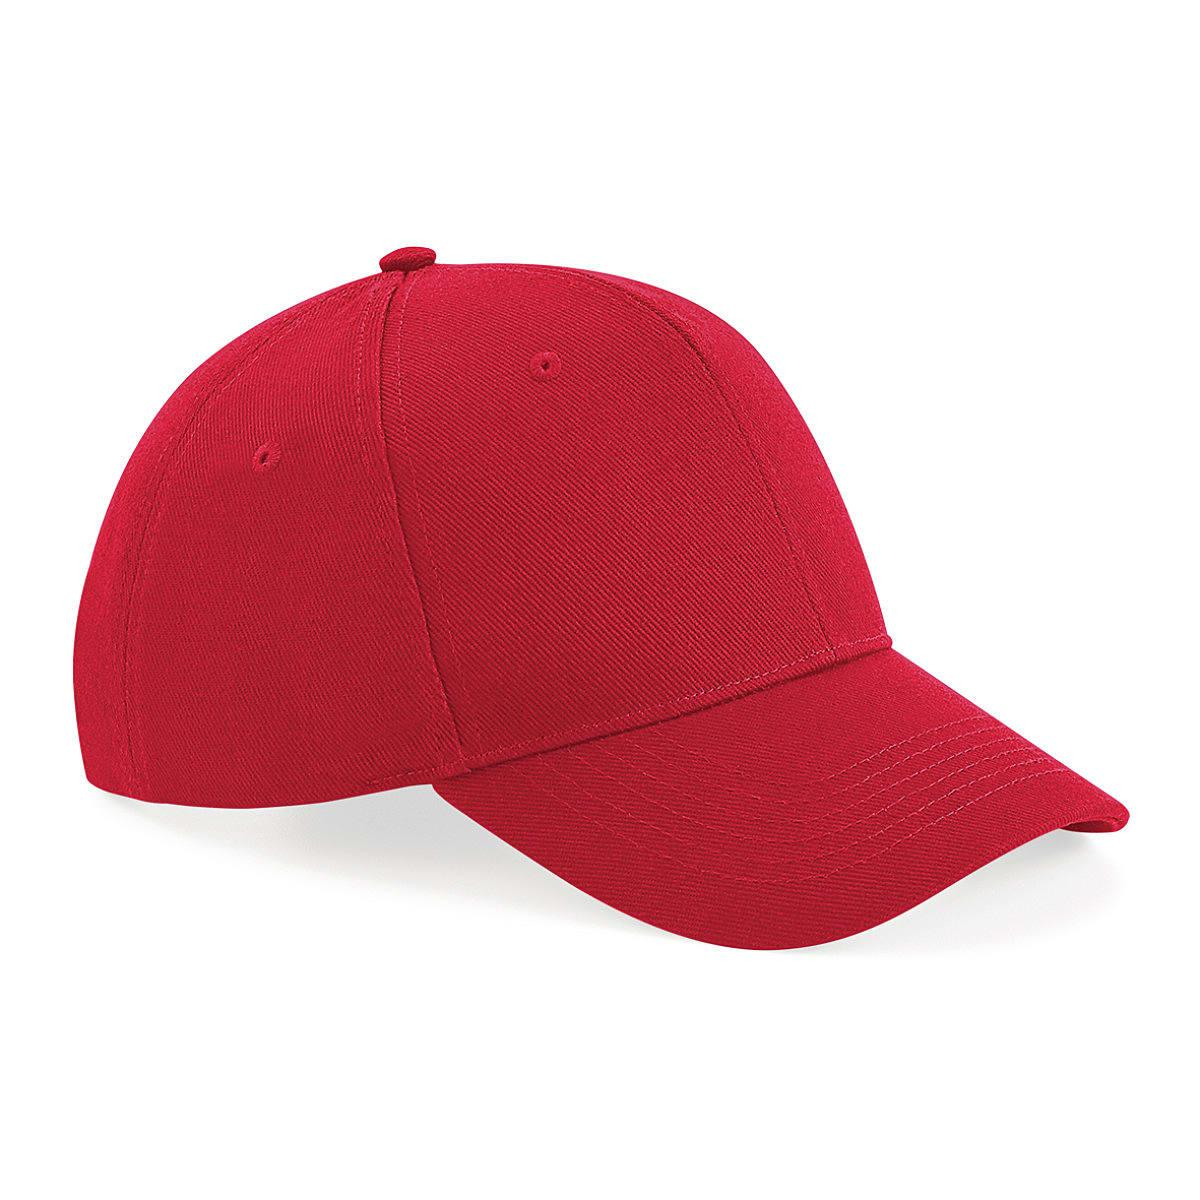 Beechfield Untimate 6 Panel Cap in Classic Red (Product Code: B18)